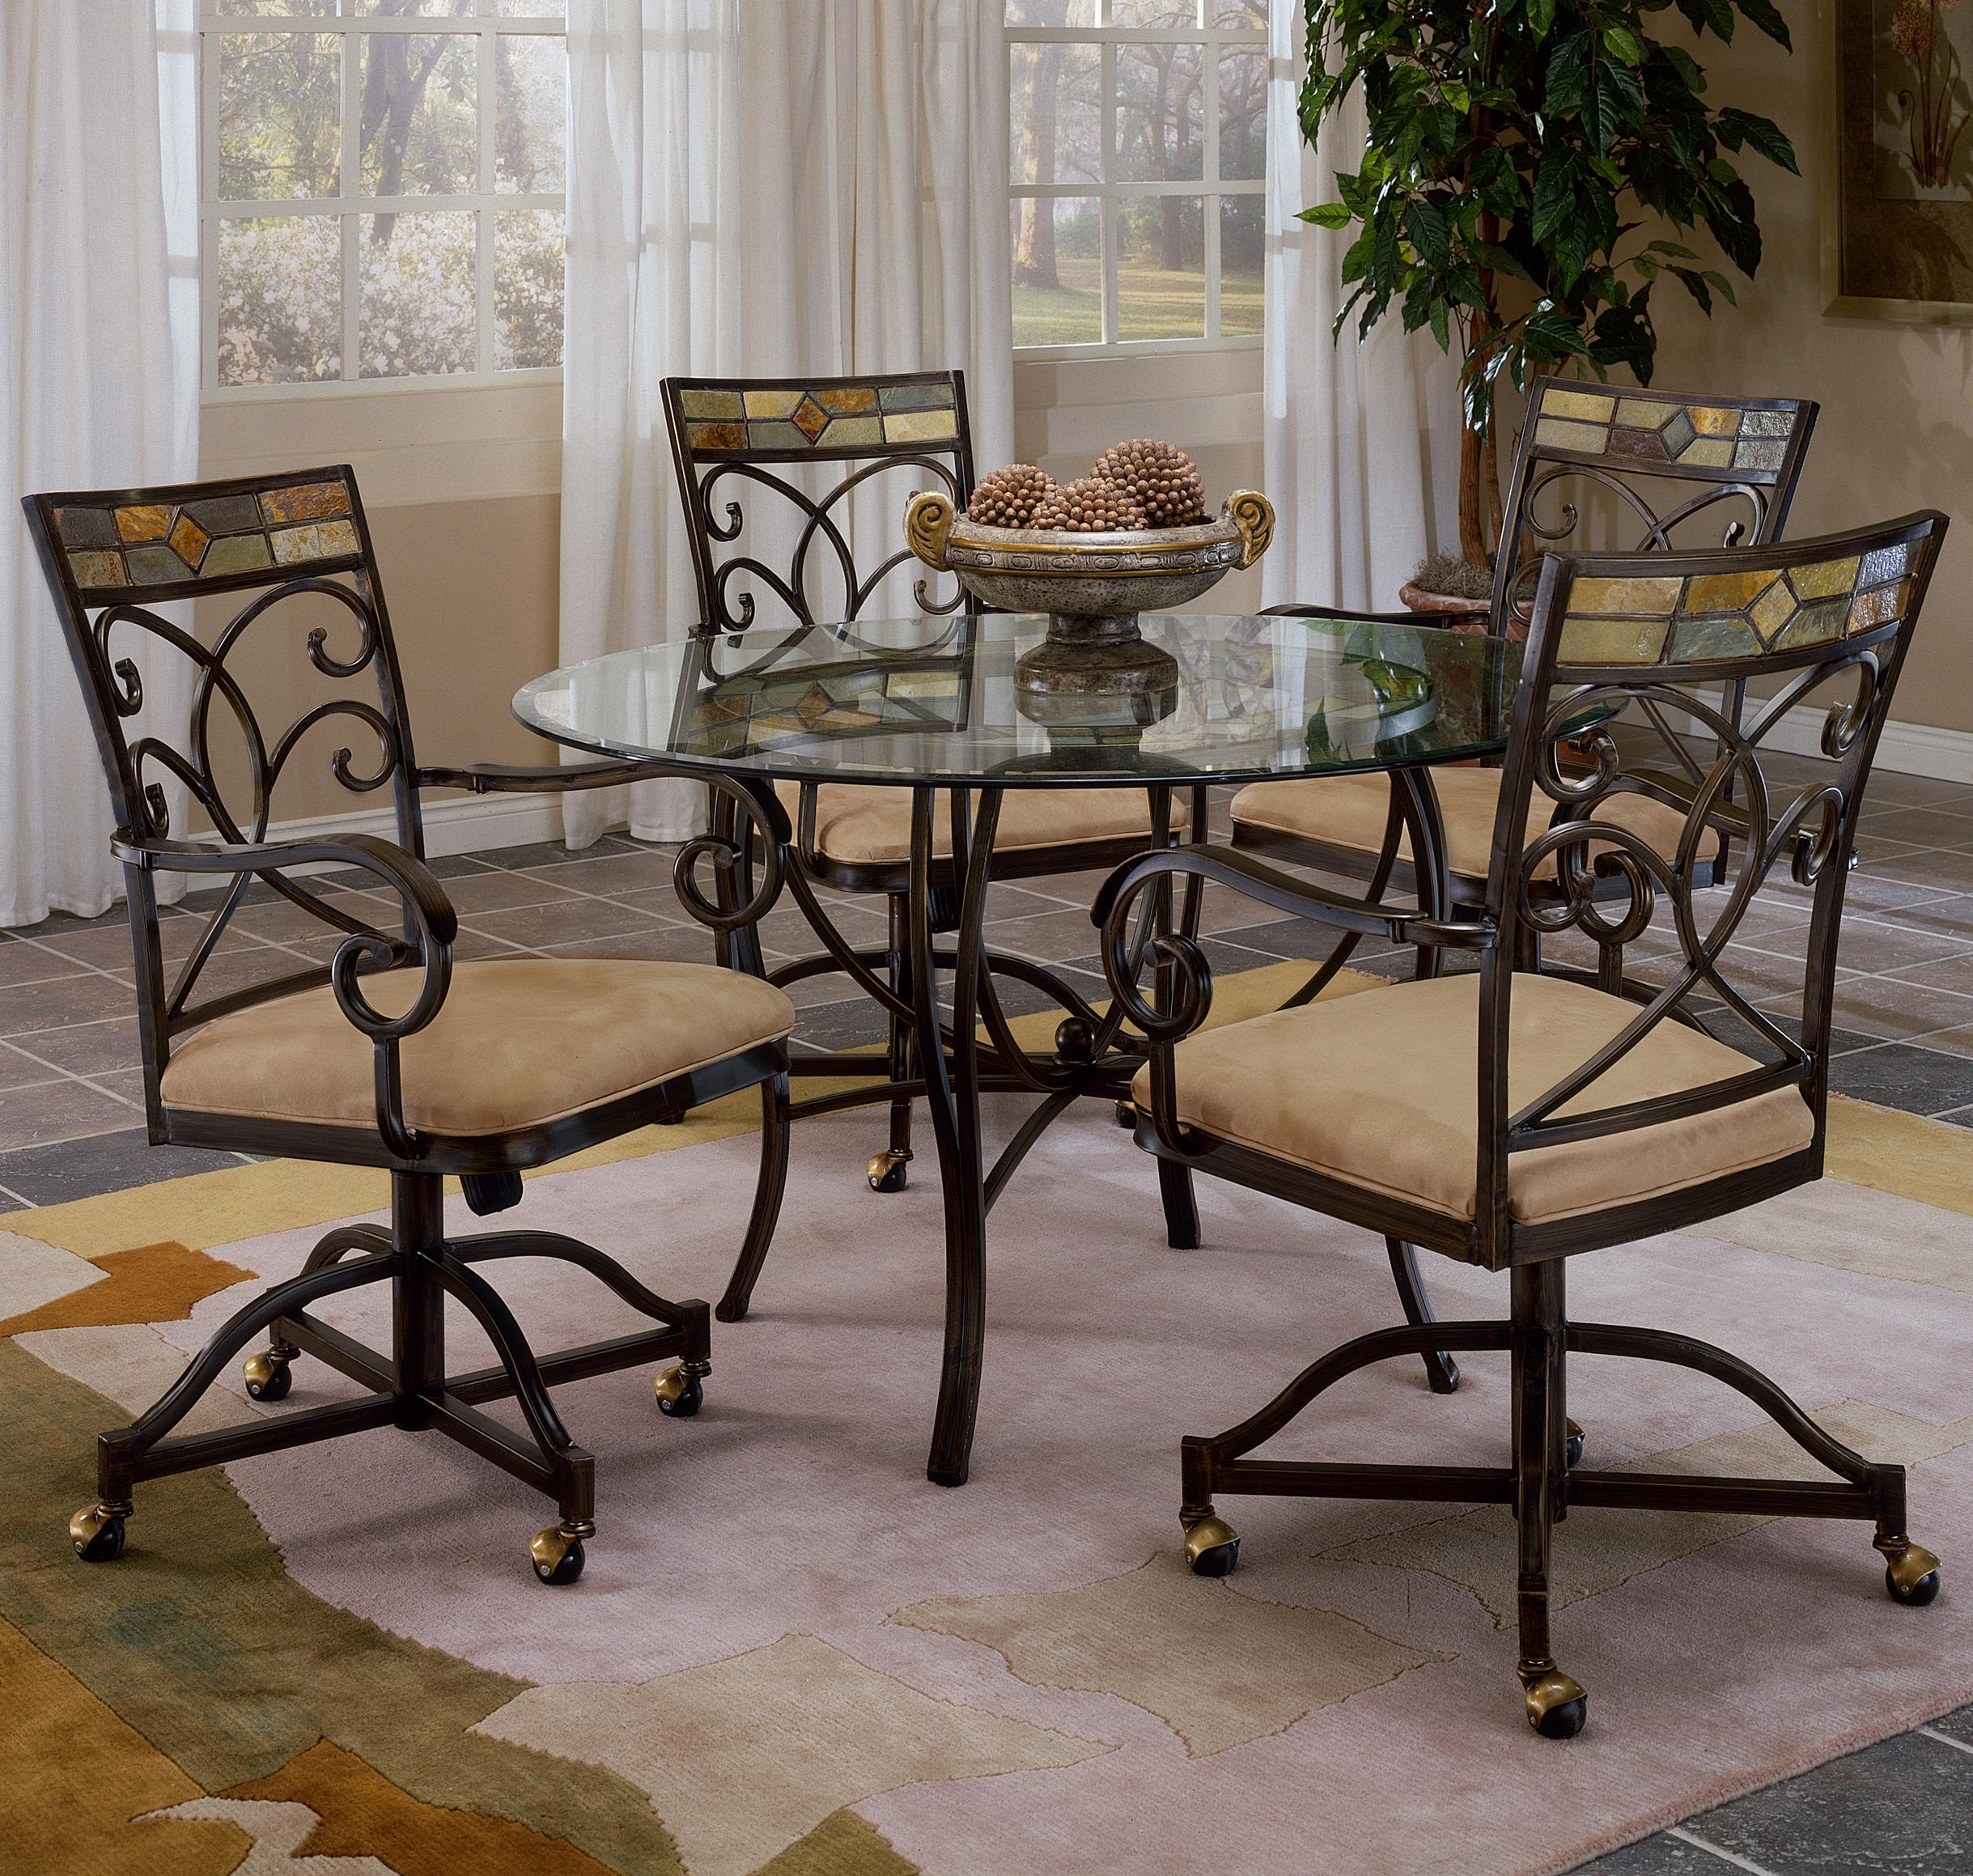 Hillsdale Pompei Scrolling 5 Piece Dining Set With Casters Westrich Furniture Appliances Dining 5 Piece Sets